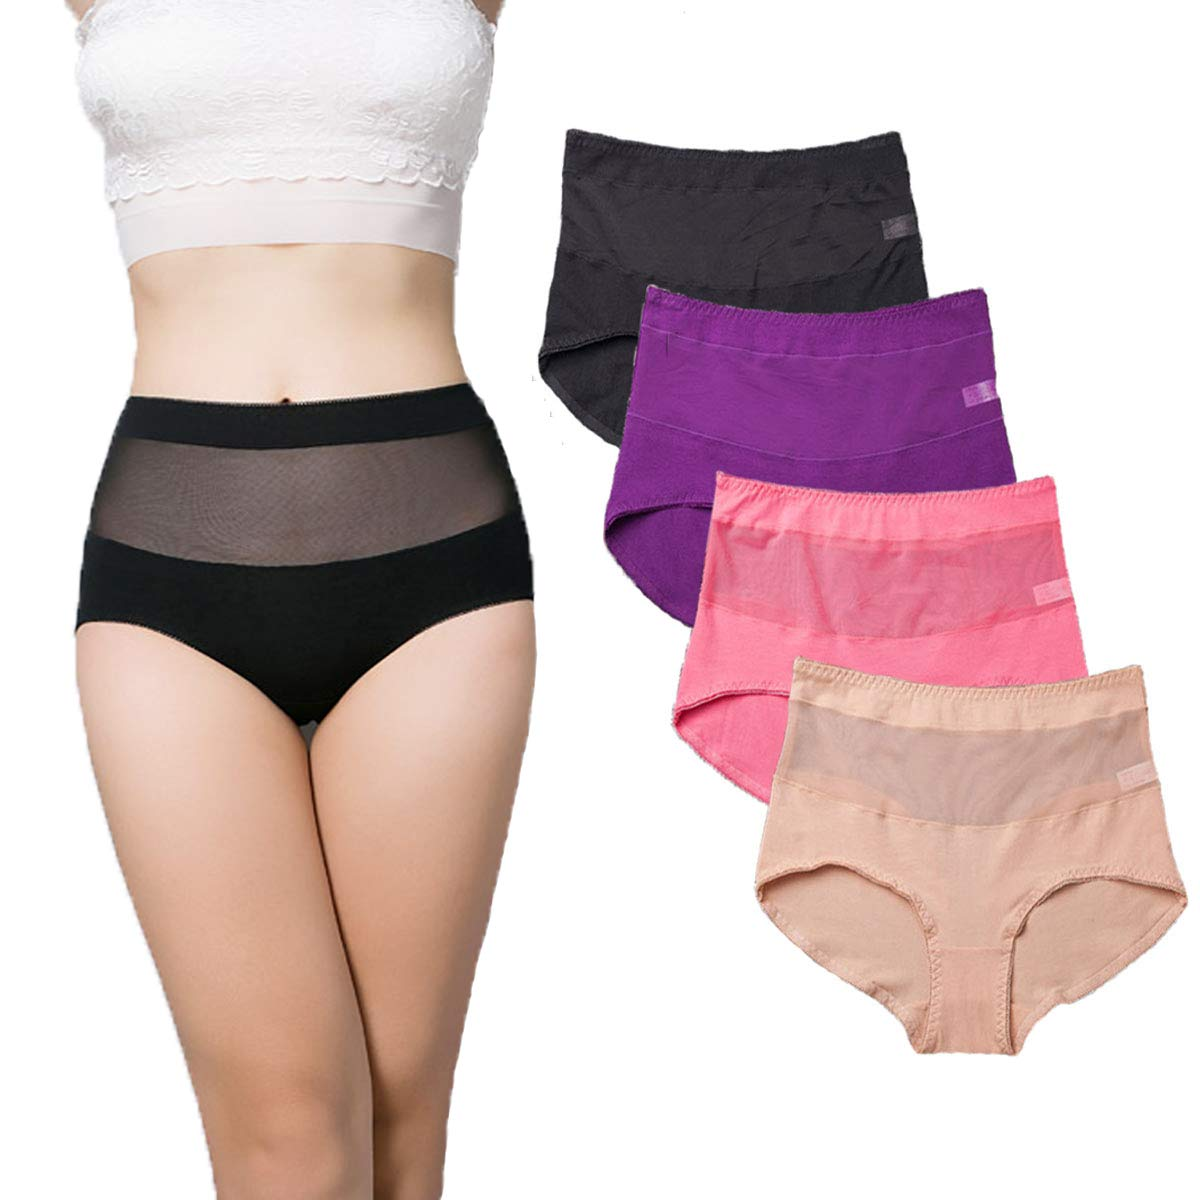 BDSMAGE Ladies High Waisted Underwear Cotton Full Briefs Tummy Control Briefs Knickers Panties 4 Pack